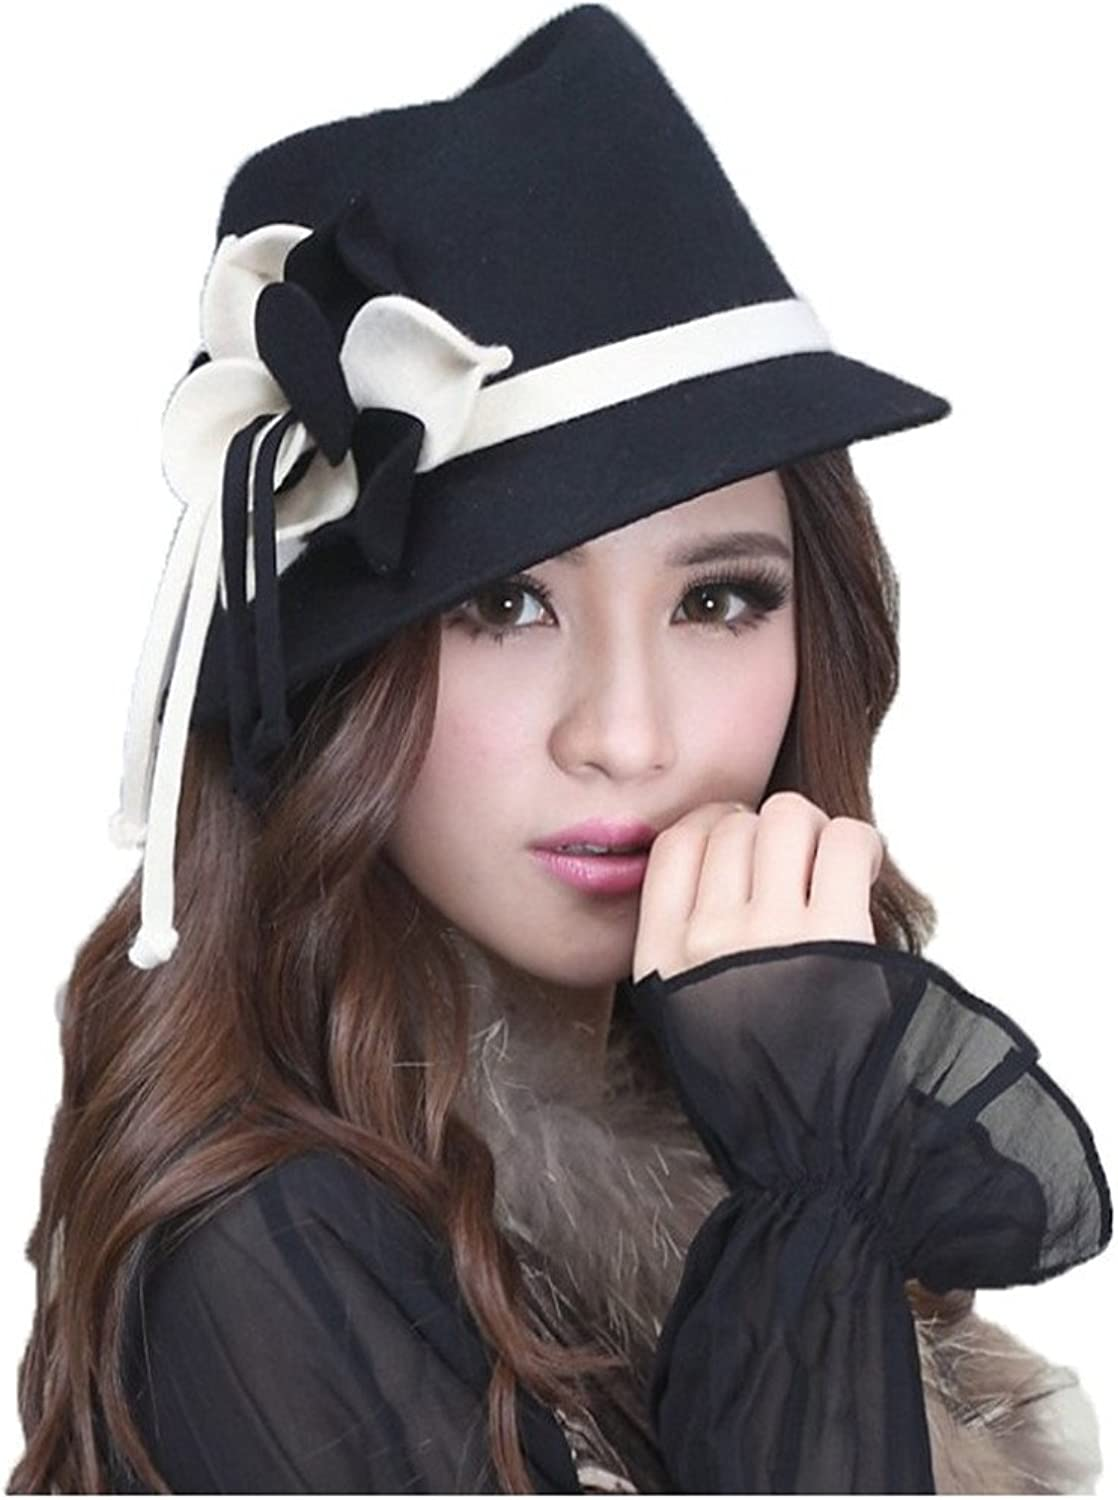 June's Young Elegant Women Hats Winter Hat Cloche Ribbons